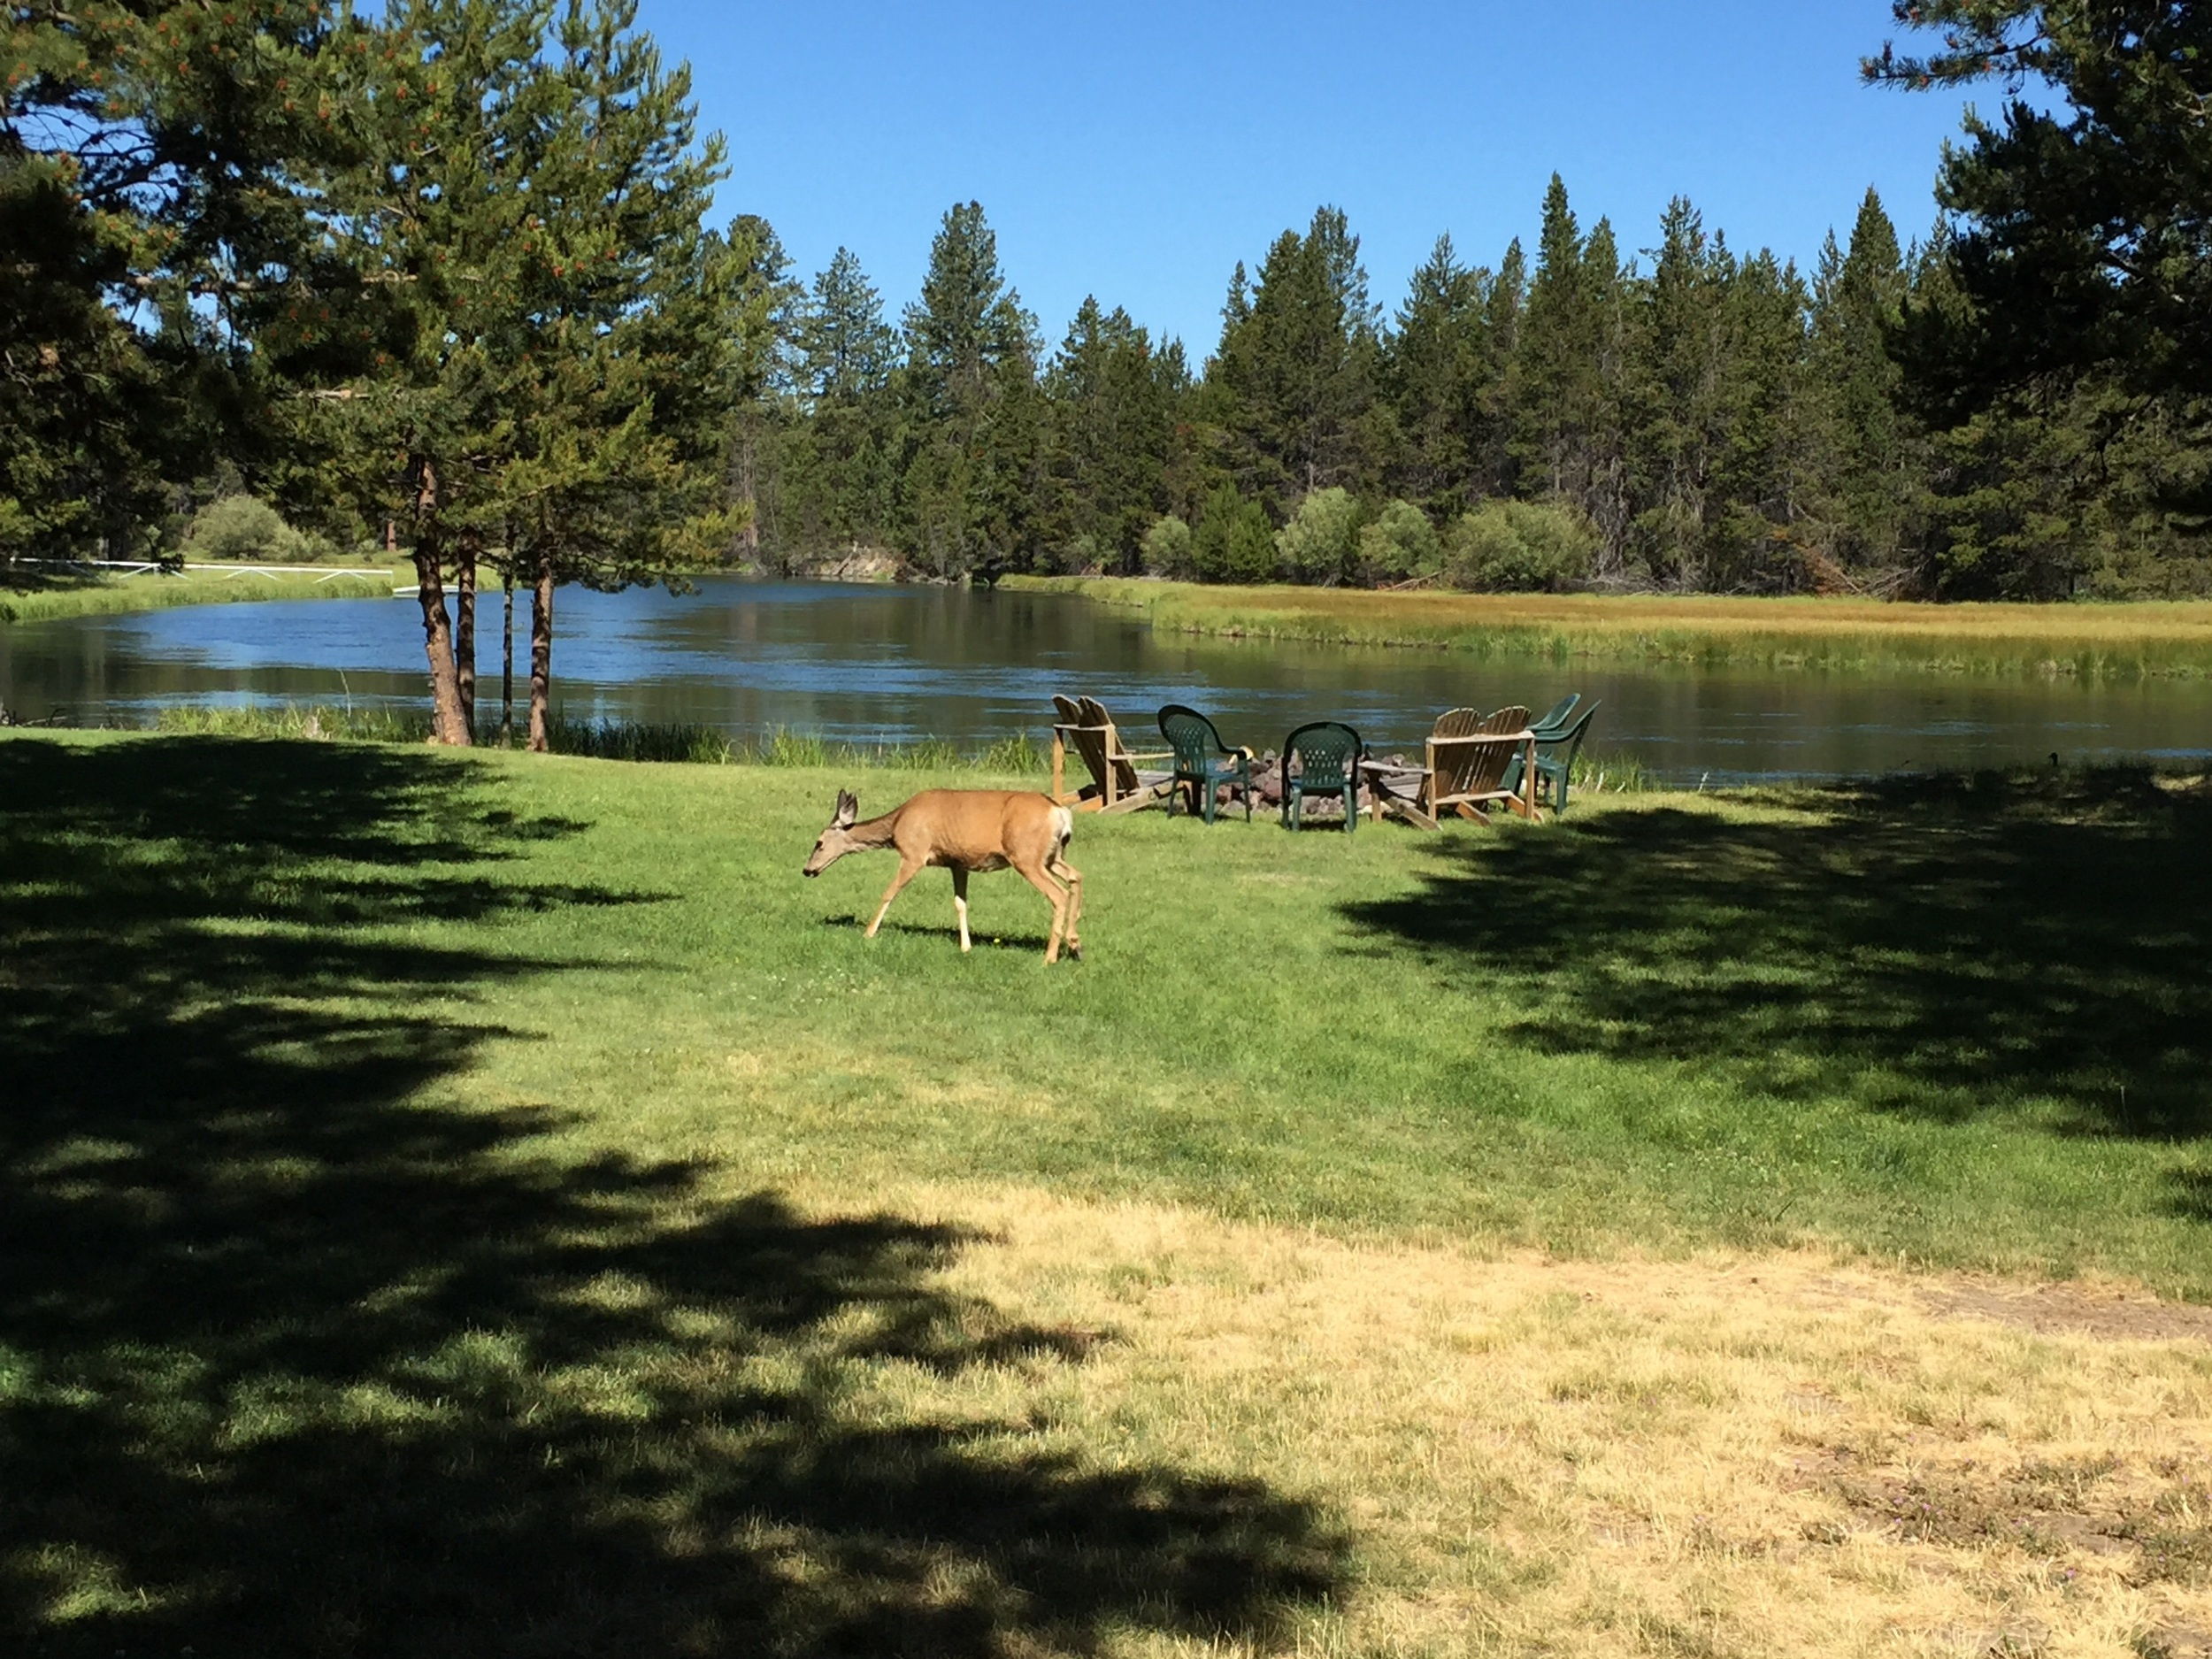 A deer family was out early every morning! We ended every night at the fire pit right by the river.